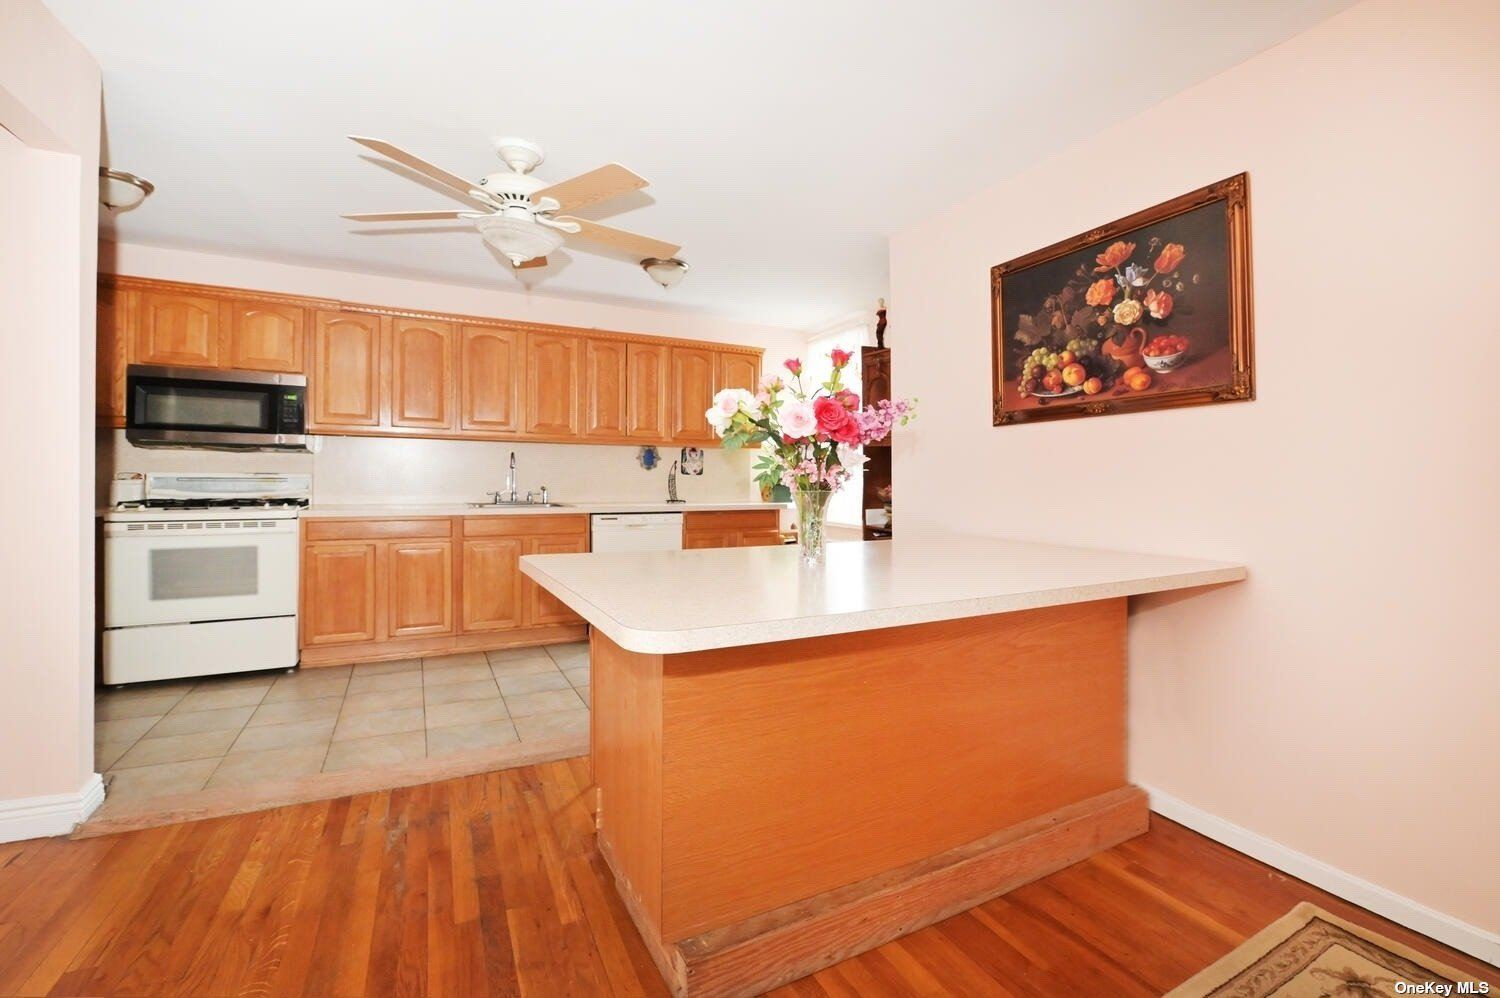 74-45 Yeloowstone Blvd #5G, Forest Hills, NY 11375 - MLS#: 3303226